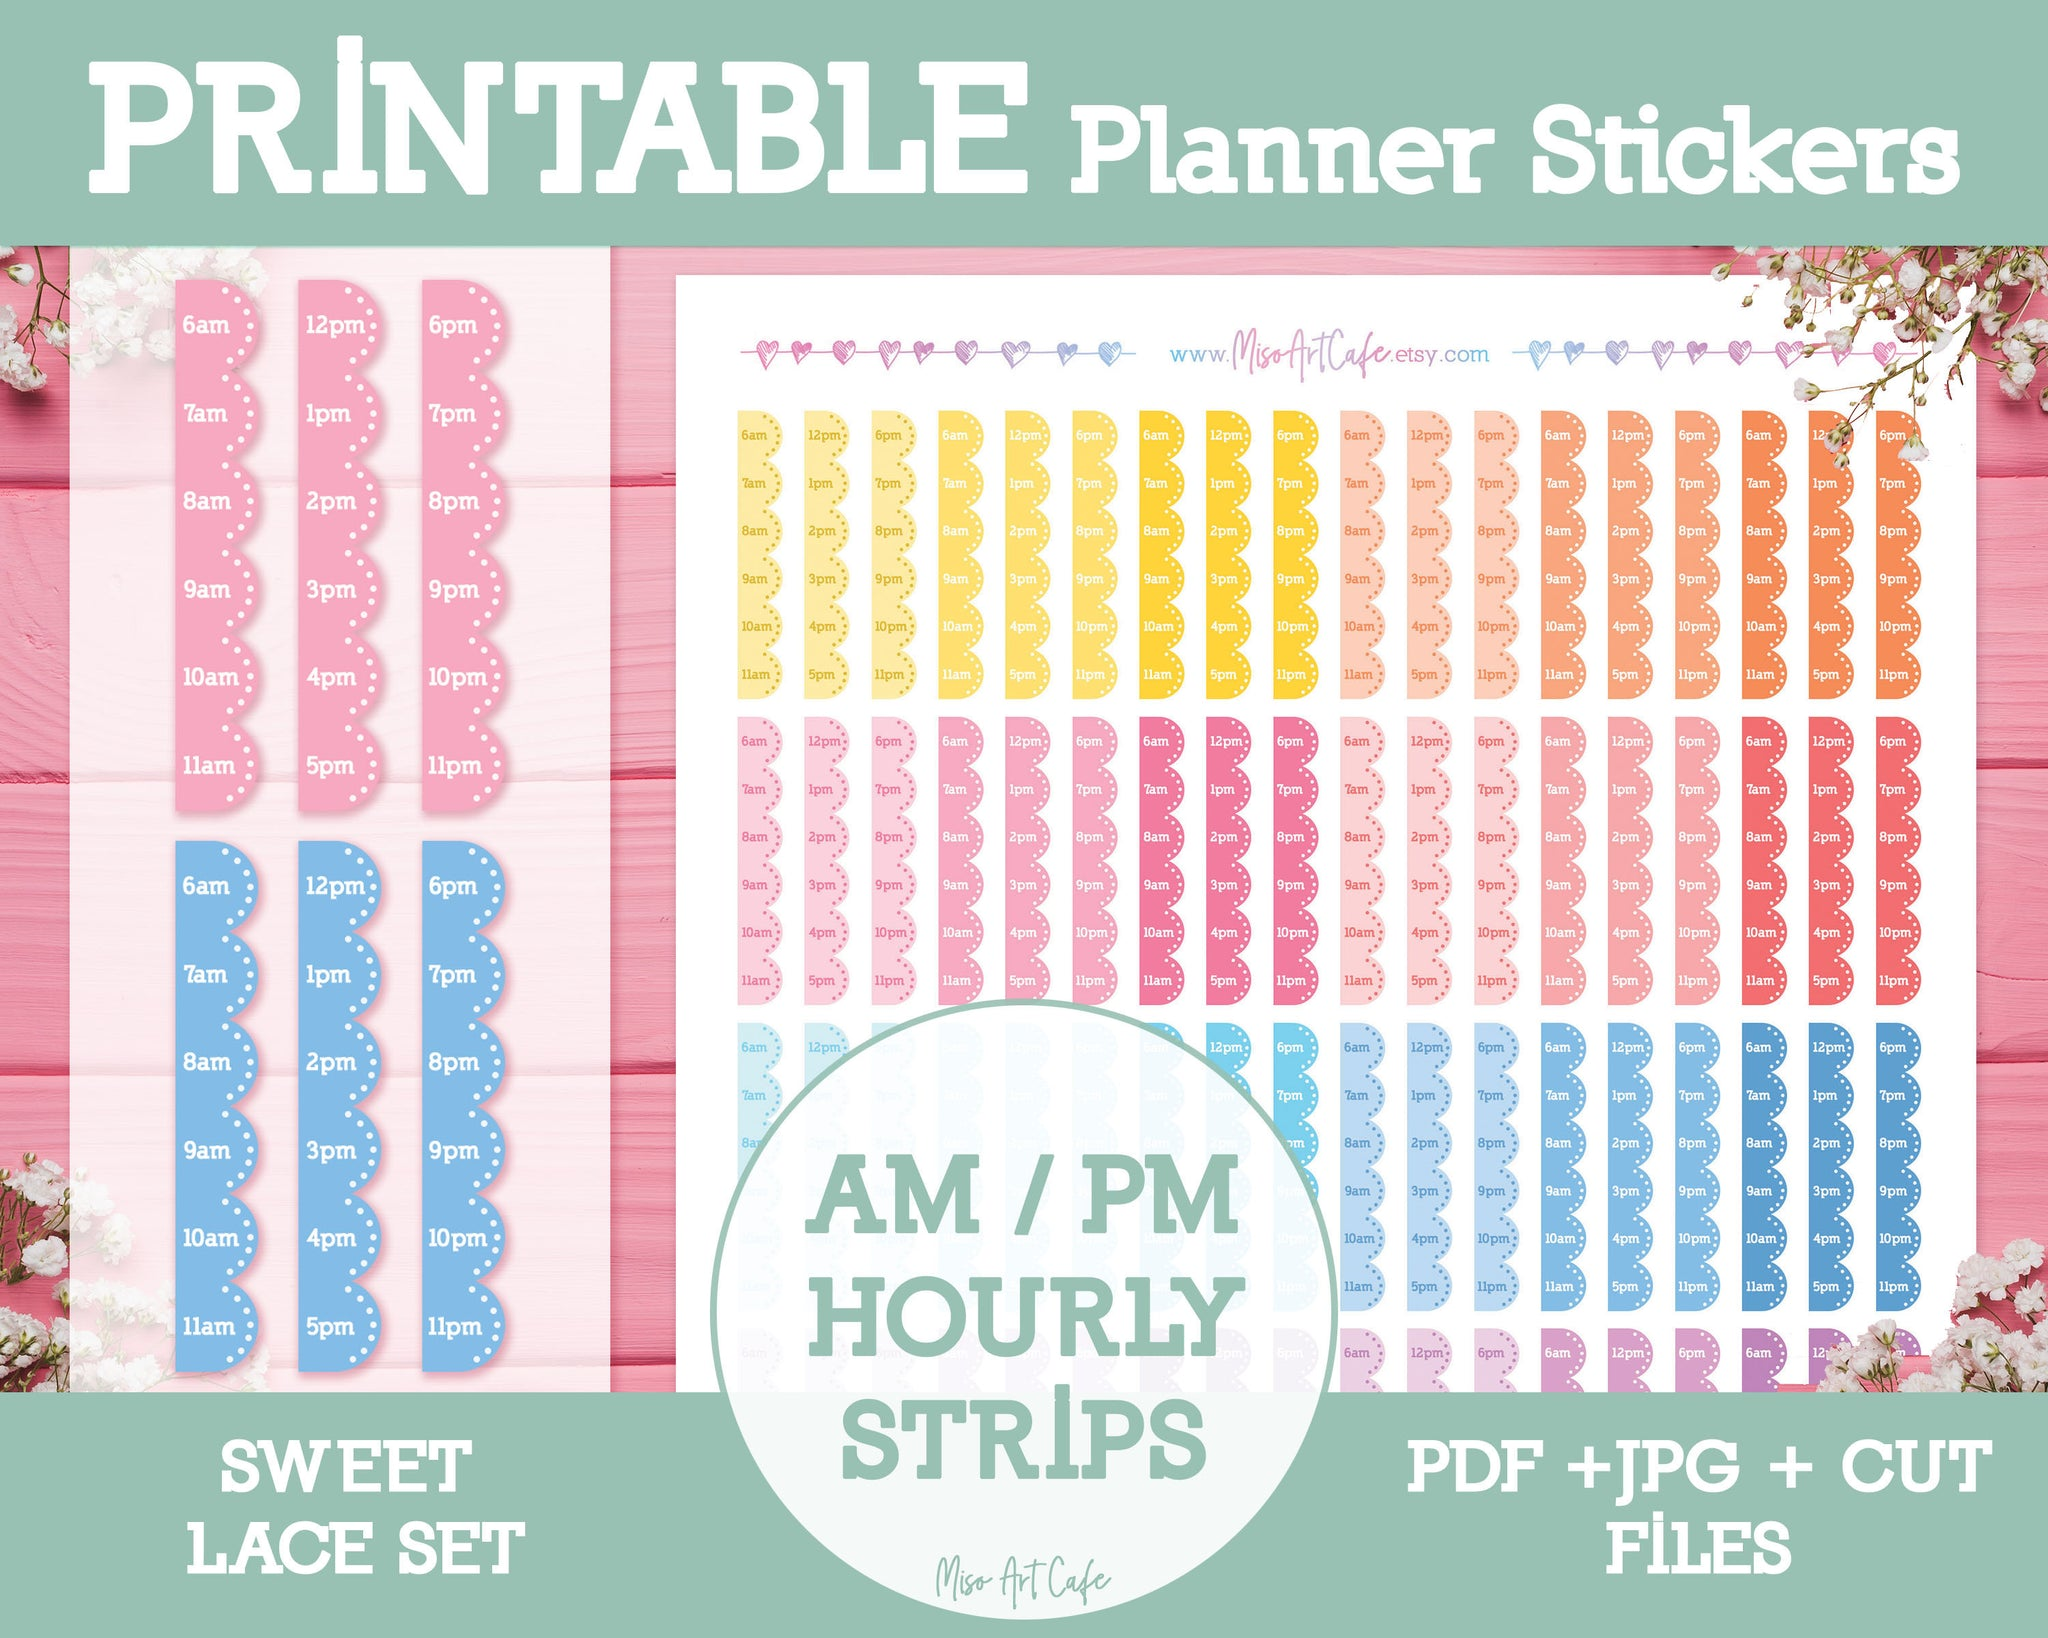 Printable Hourly Strips (AM/PM Format) - Sweet Lace Planner Stickers - Miso Art Cafe Stickers for Planners